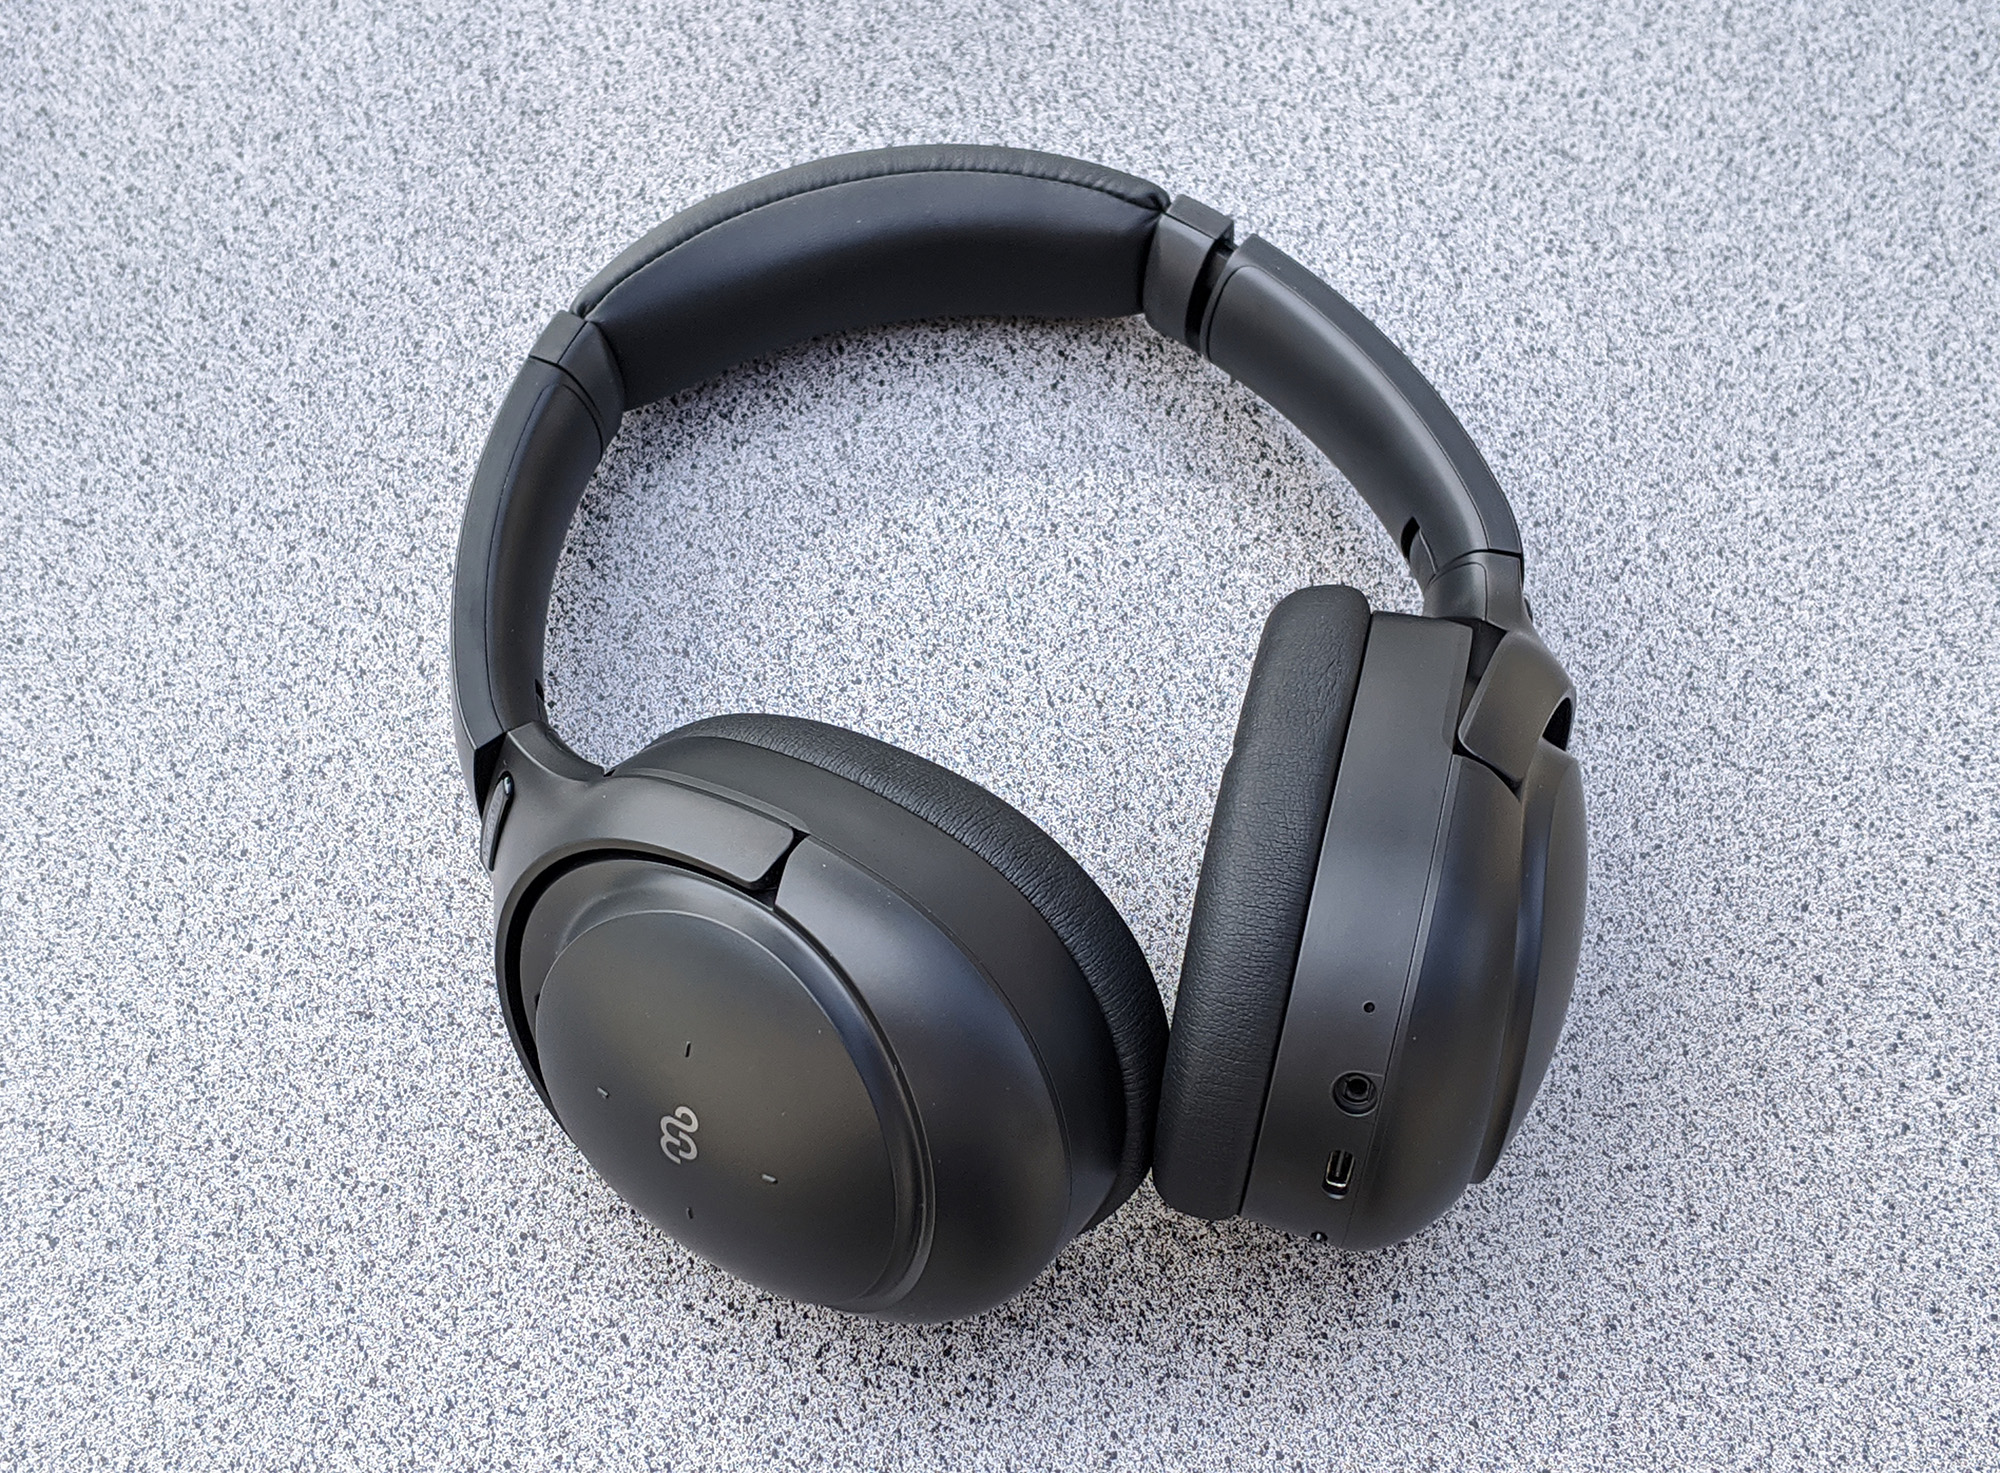 Mu6 Space 2 Noise Cancelling Headphones - Photo by John Nguyen/Nerd Reactor